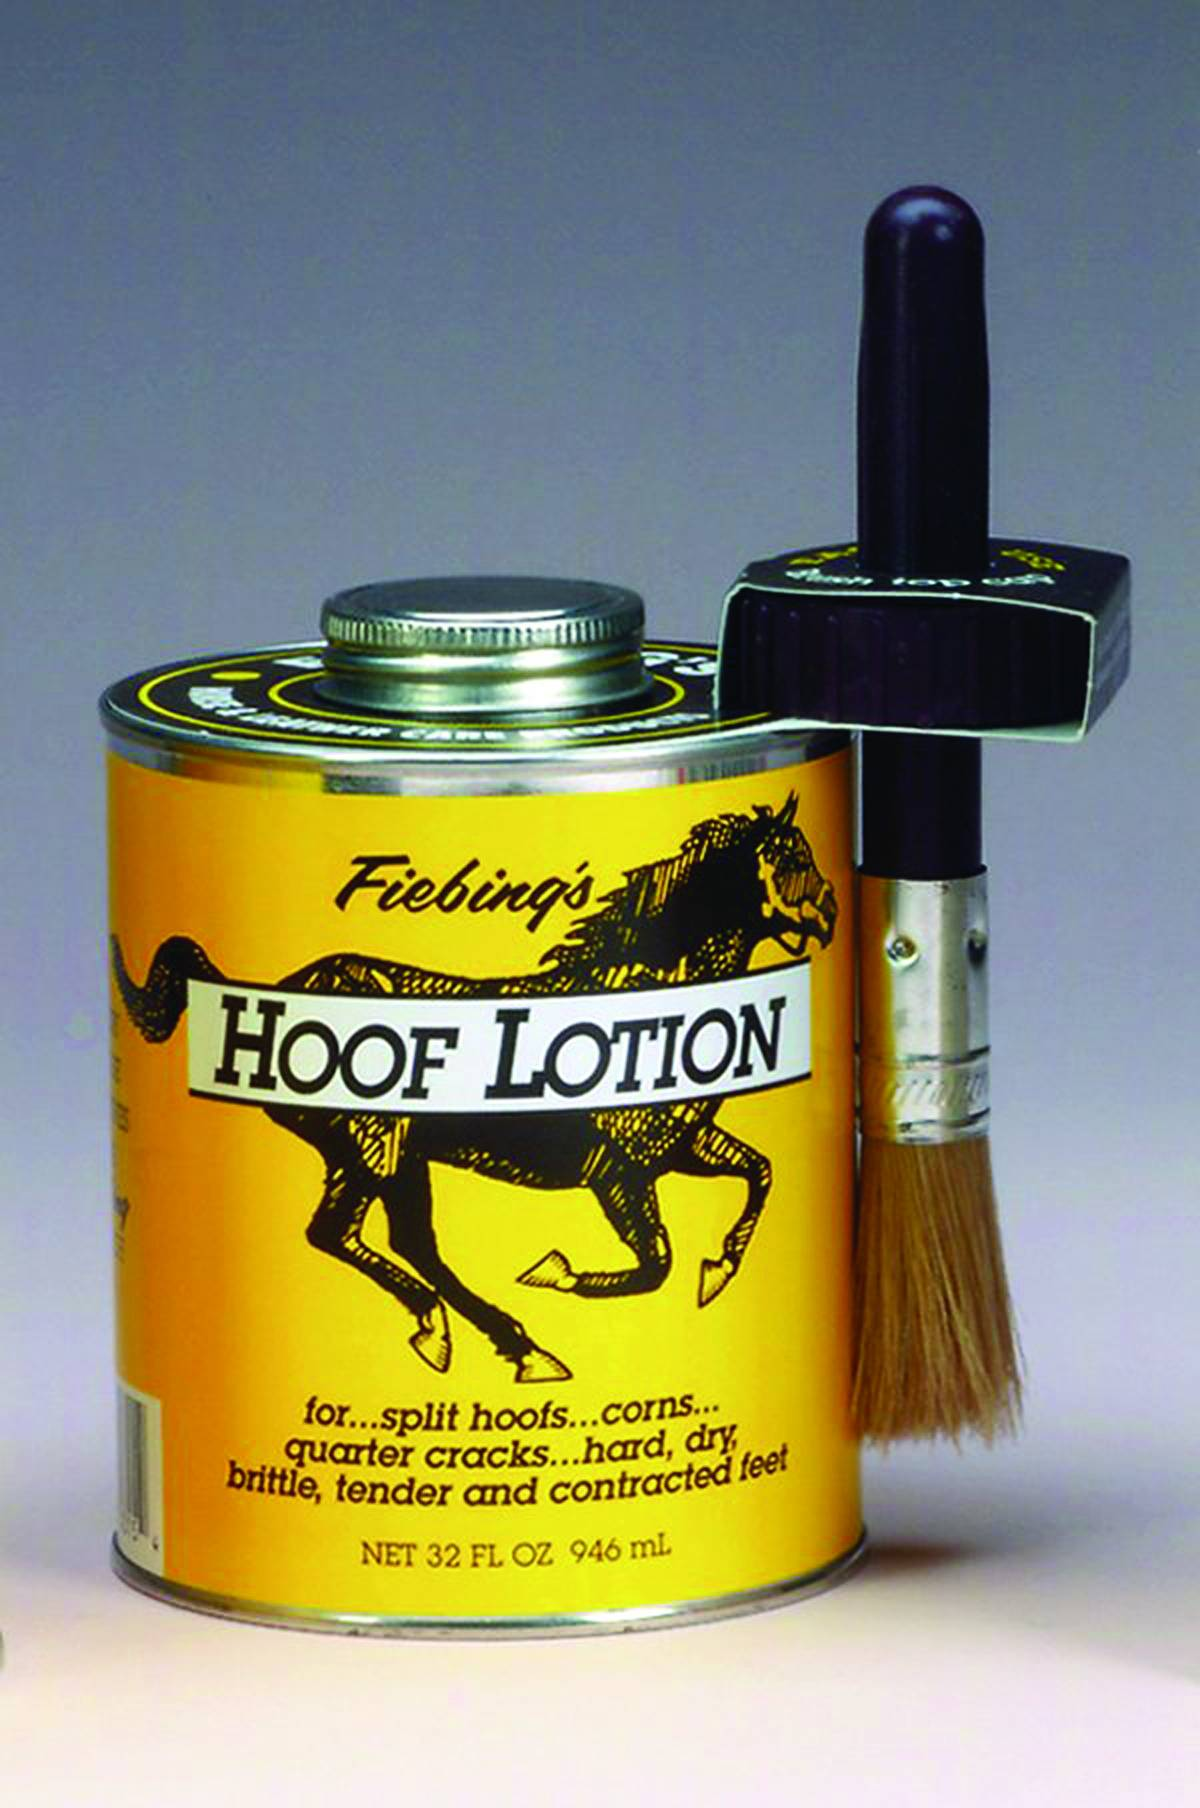 Fiebings Hoof Lotion - Applicator